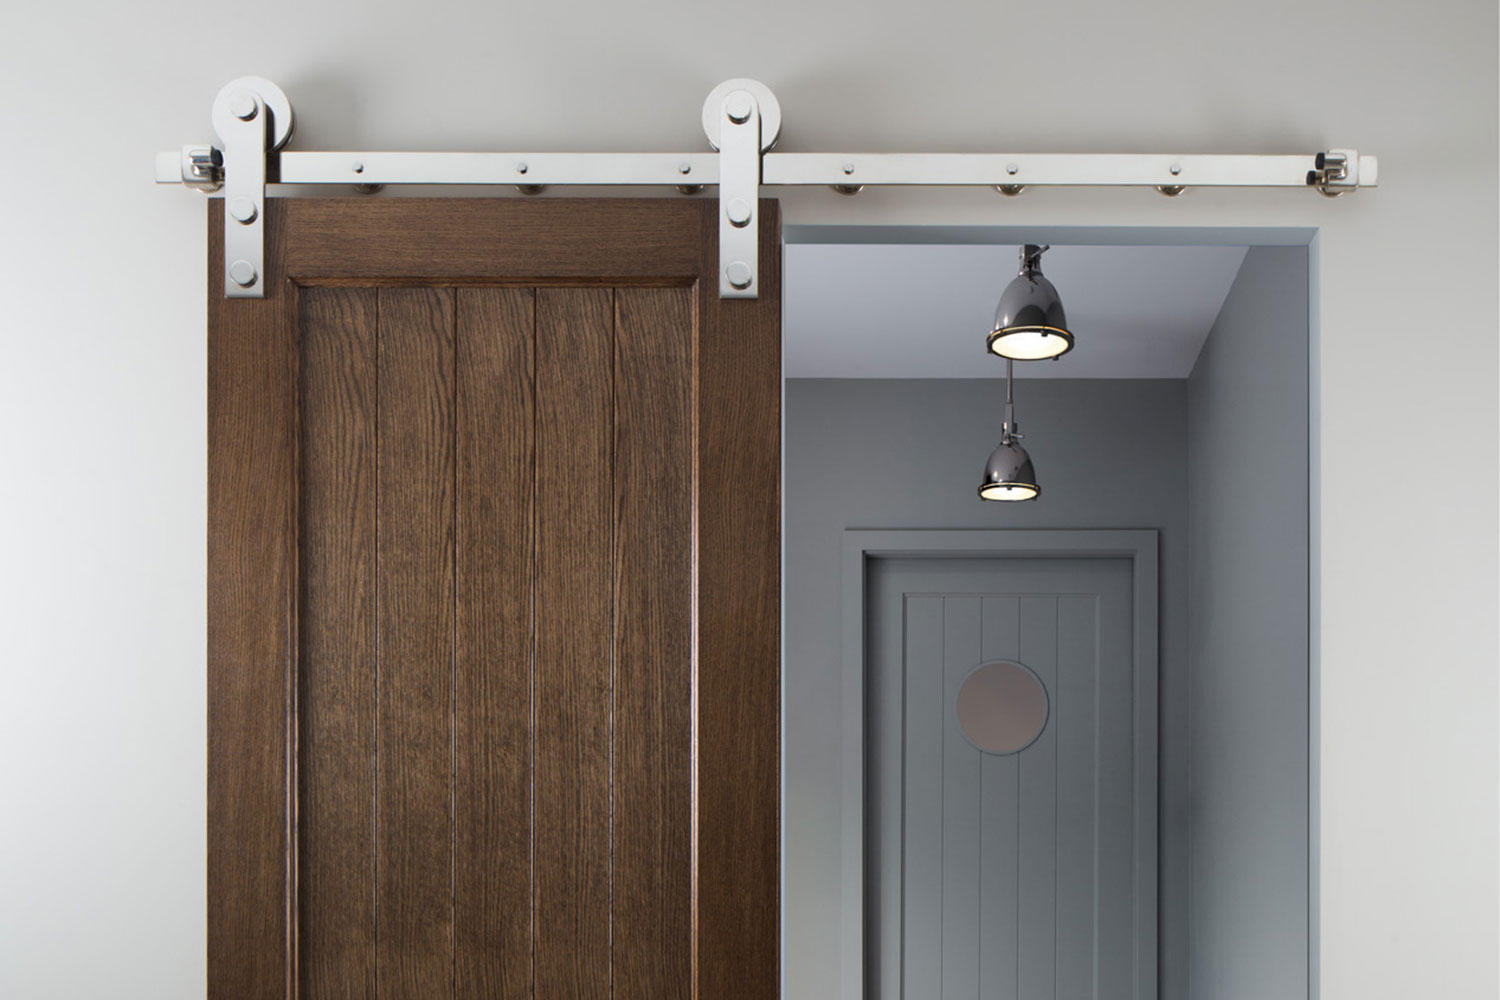 Barn Door Tracks Sliding Barn Door Track Sliding Door Fittings